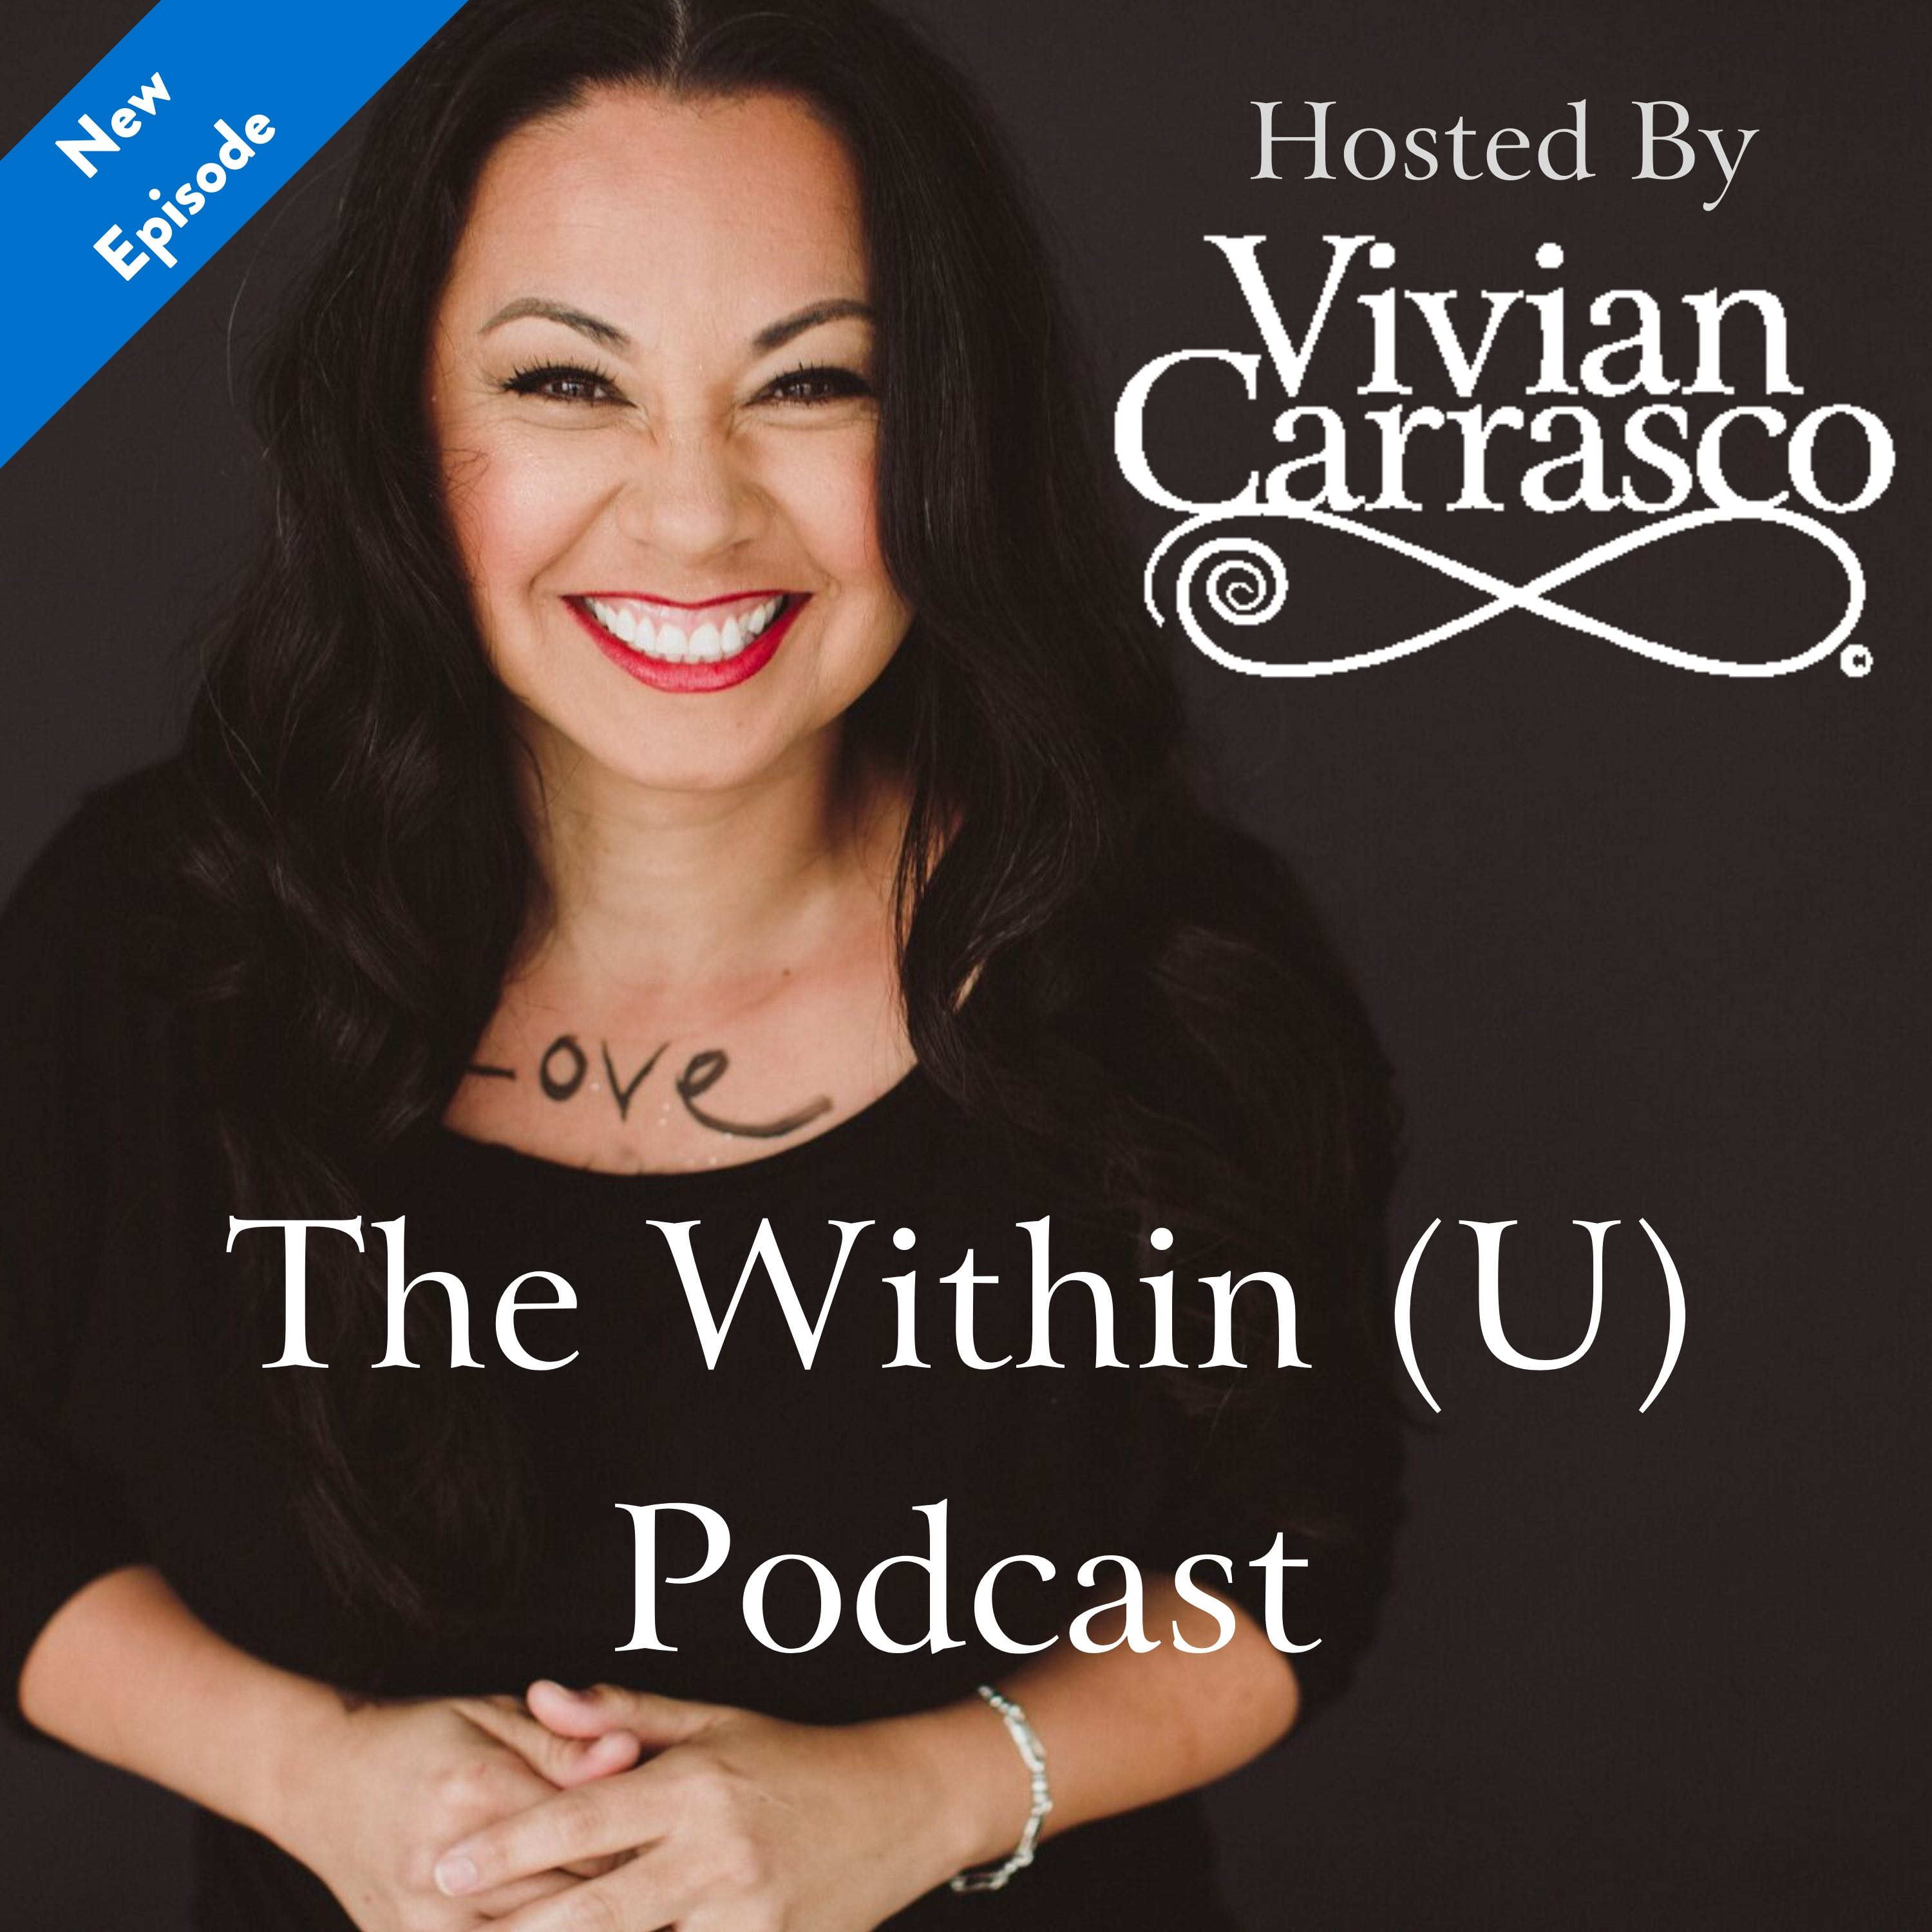 Within (U) with Dr. Vivian Carrasco show art